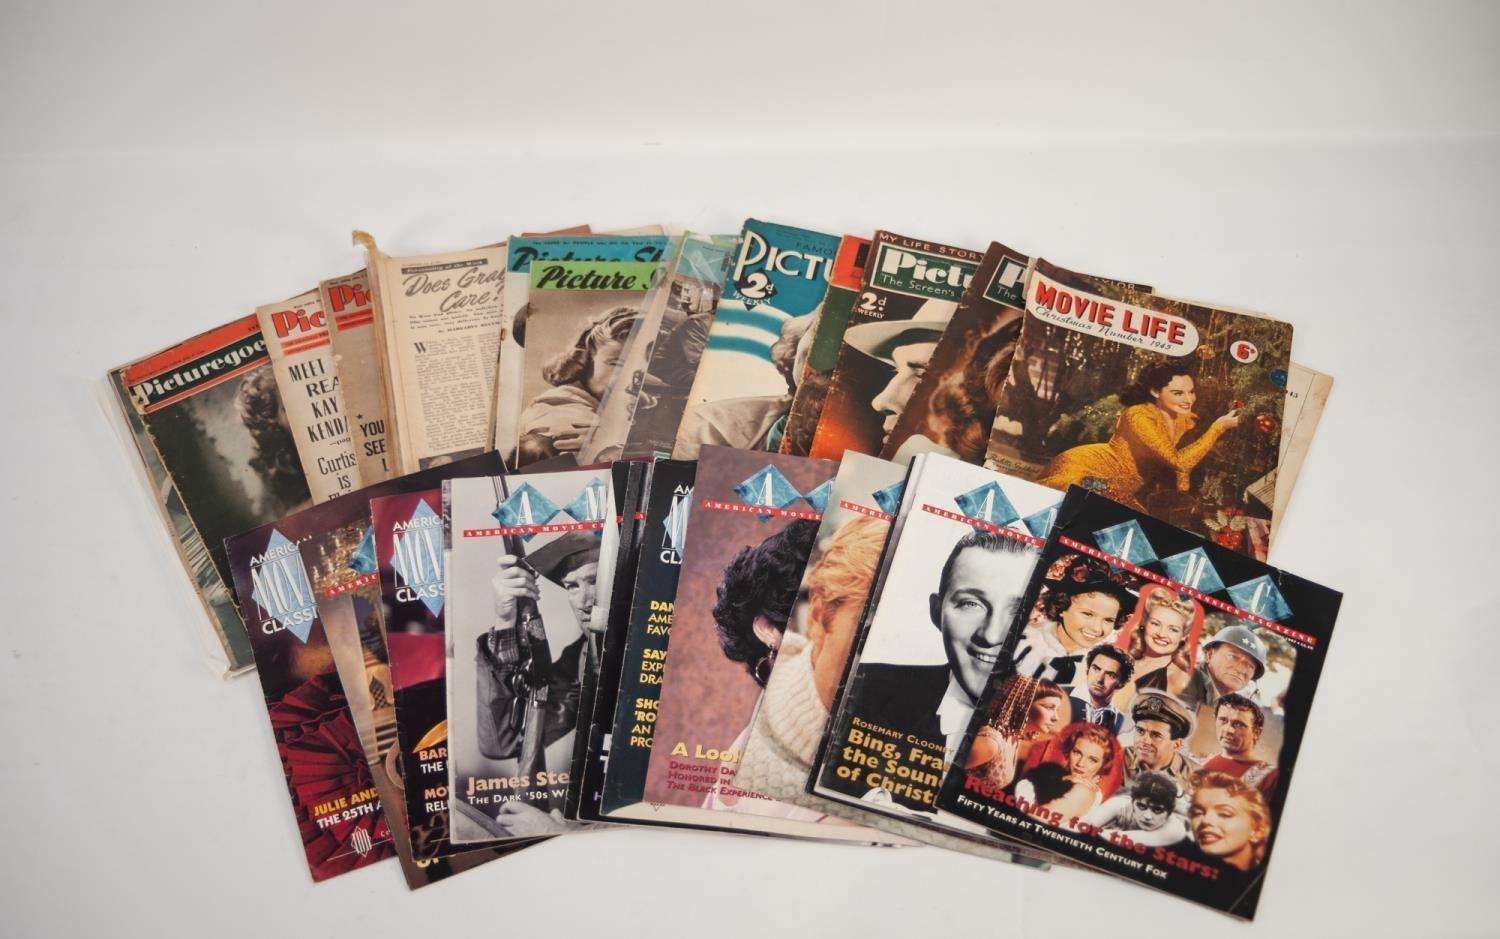 Lot 235 - APPROXIMATELY 110 FILM MAGAZINES, mainly 1930s to 1980s, including 10 copies of 'Cine Musical', also